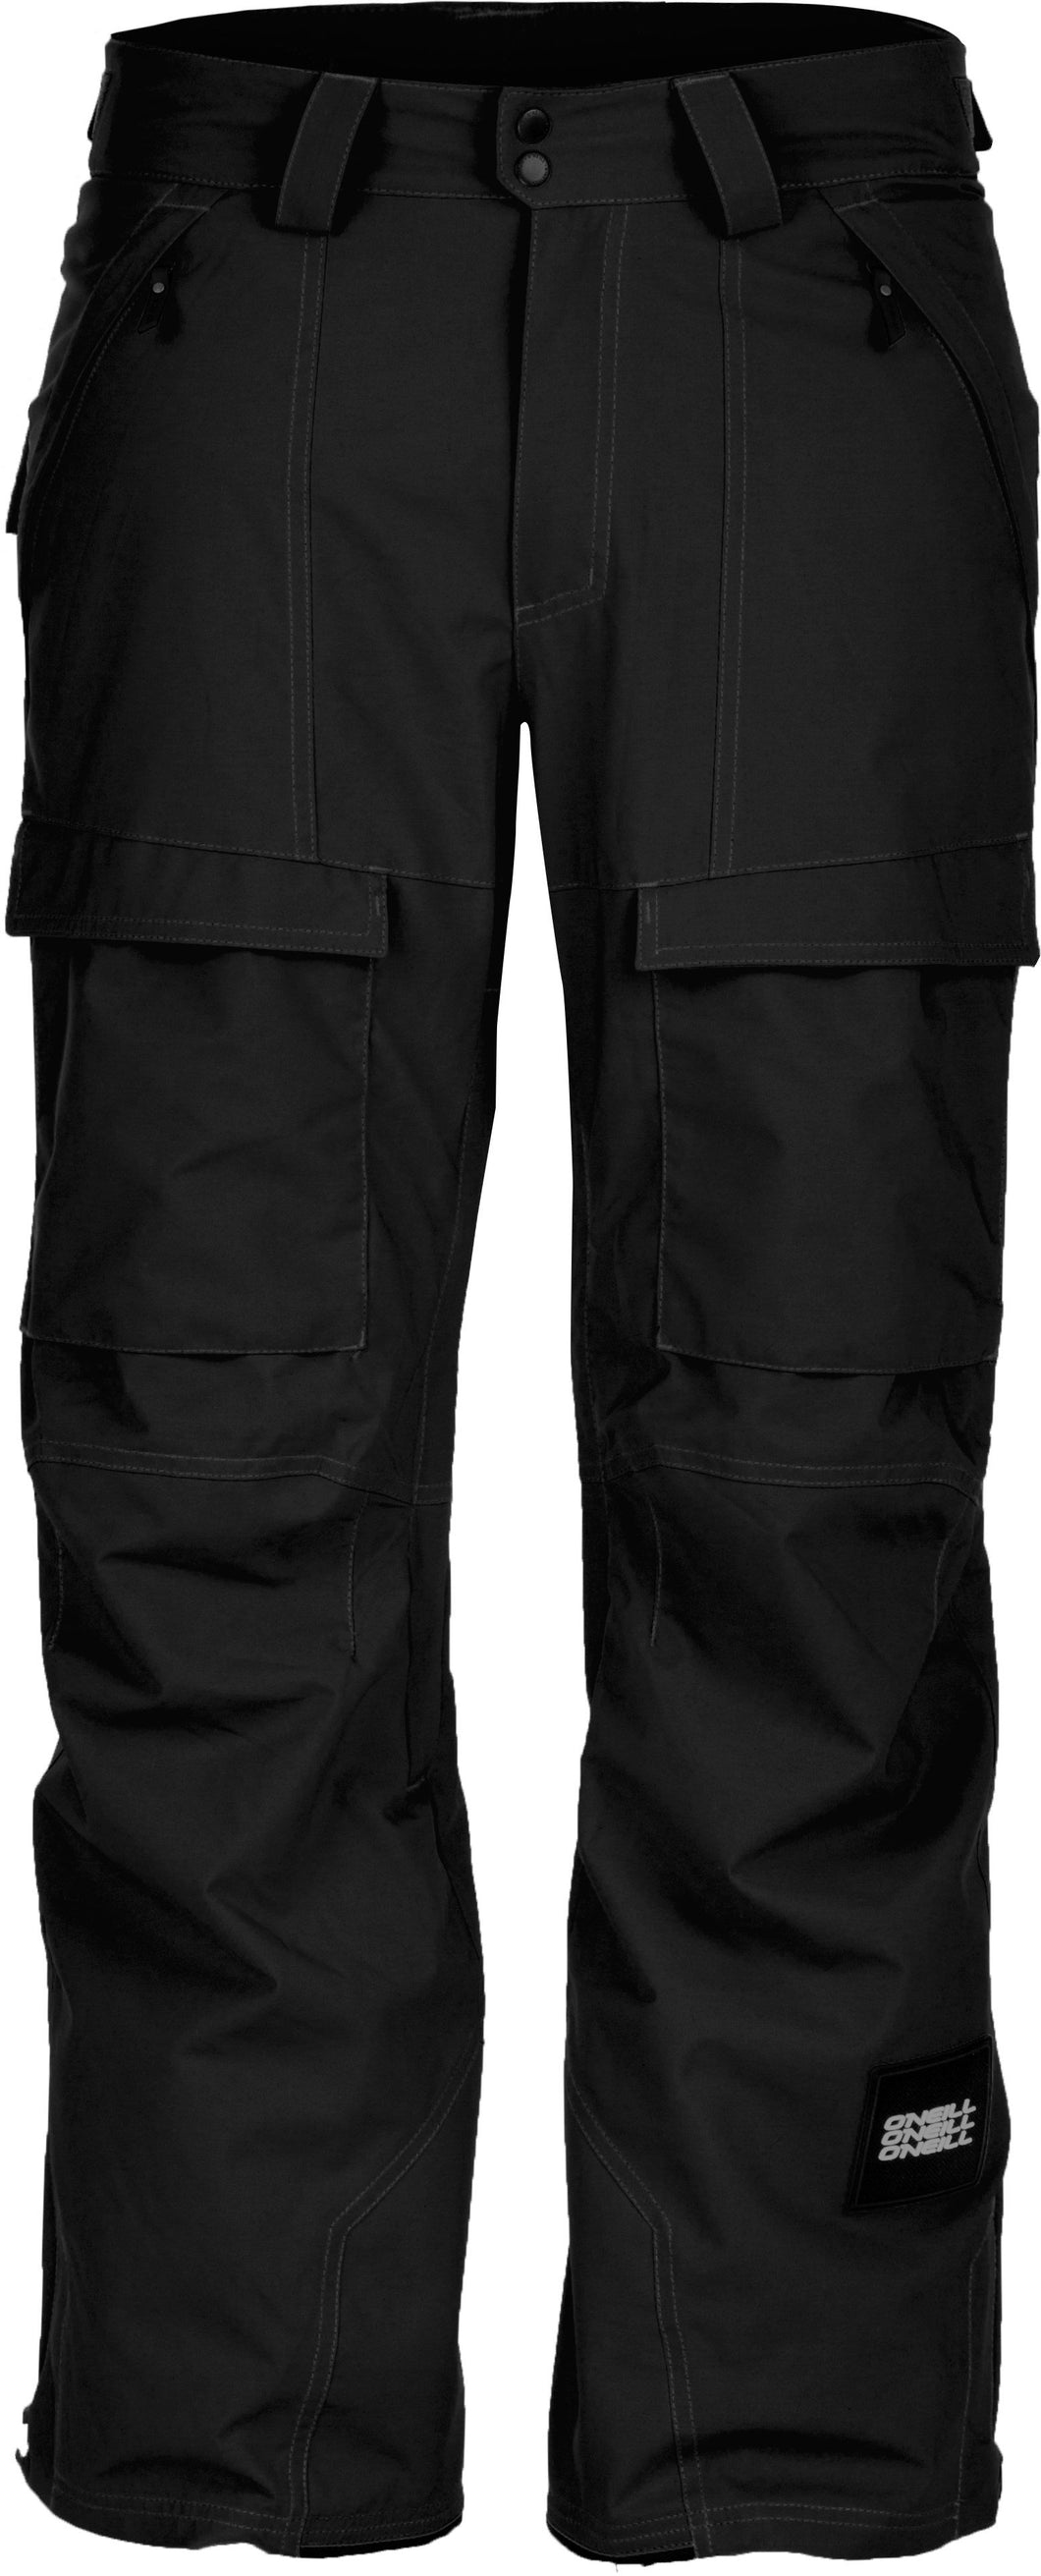 O'Neill Men's Ski and Snowboard Cargo Pant Front